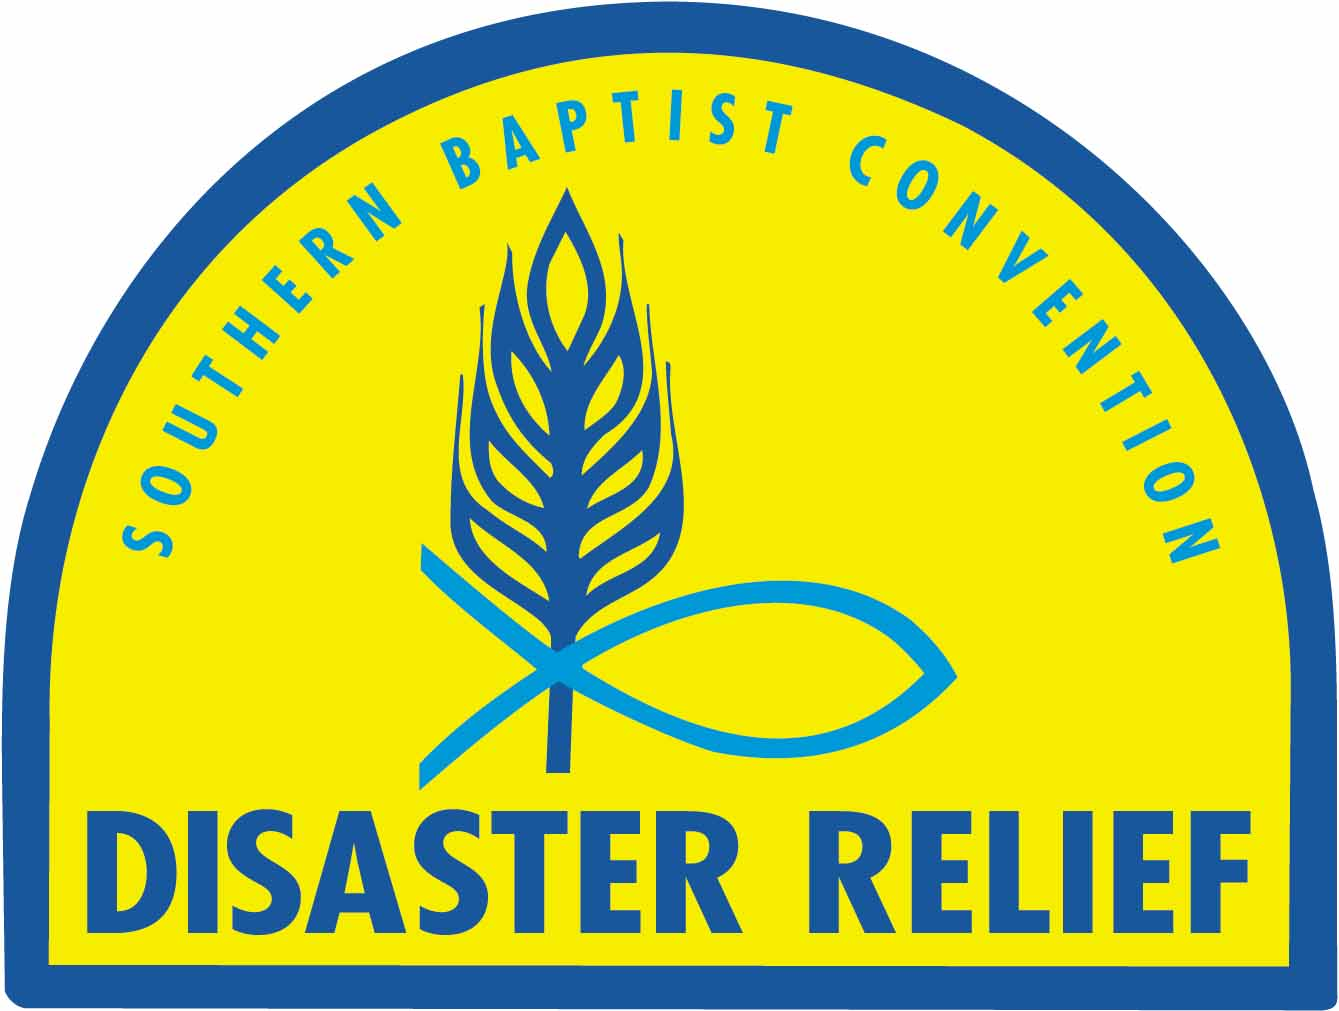 DISASTER-RELIEF-LOGO-4C1-copy